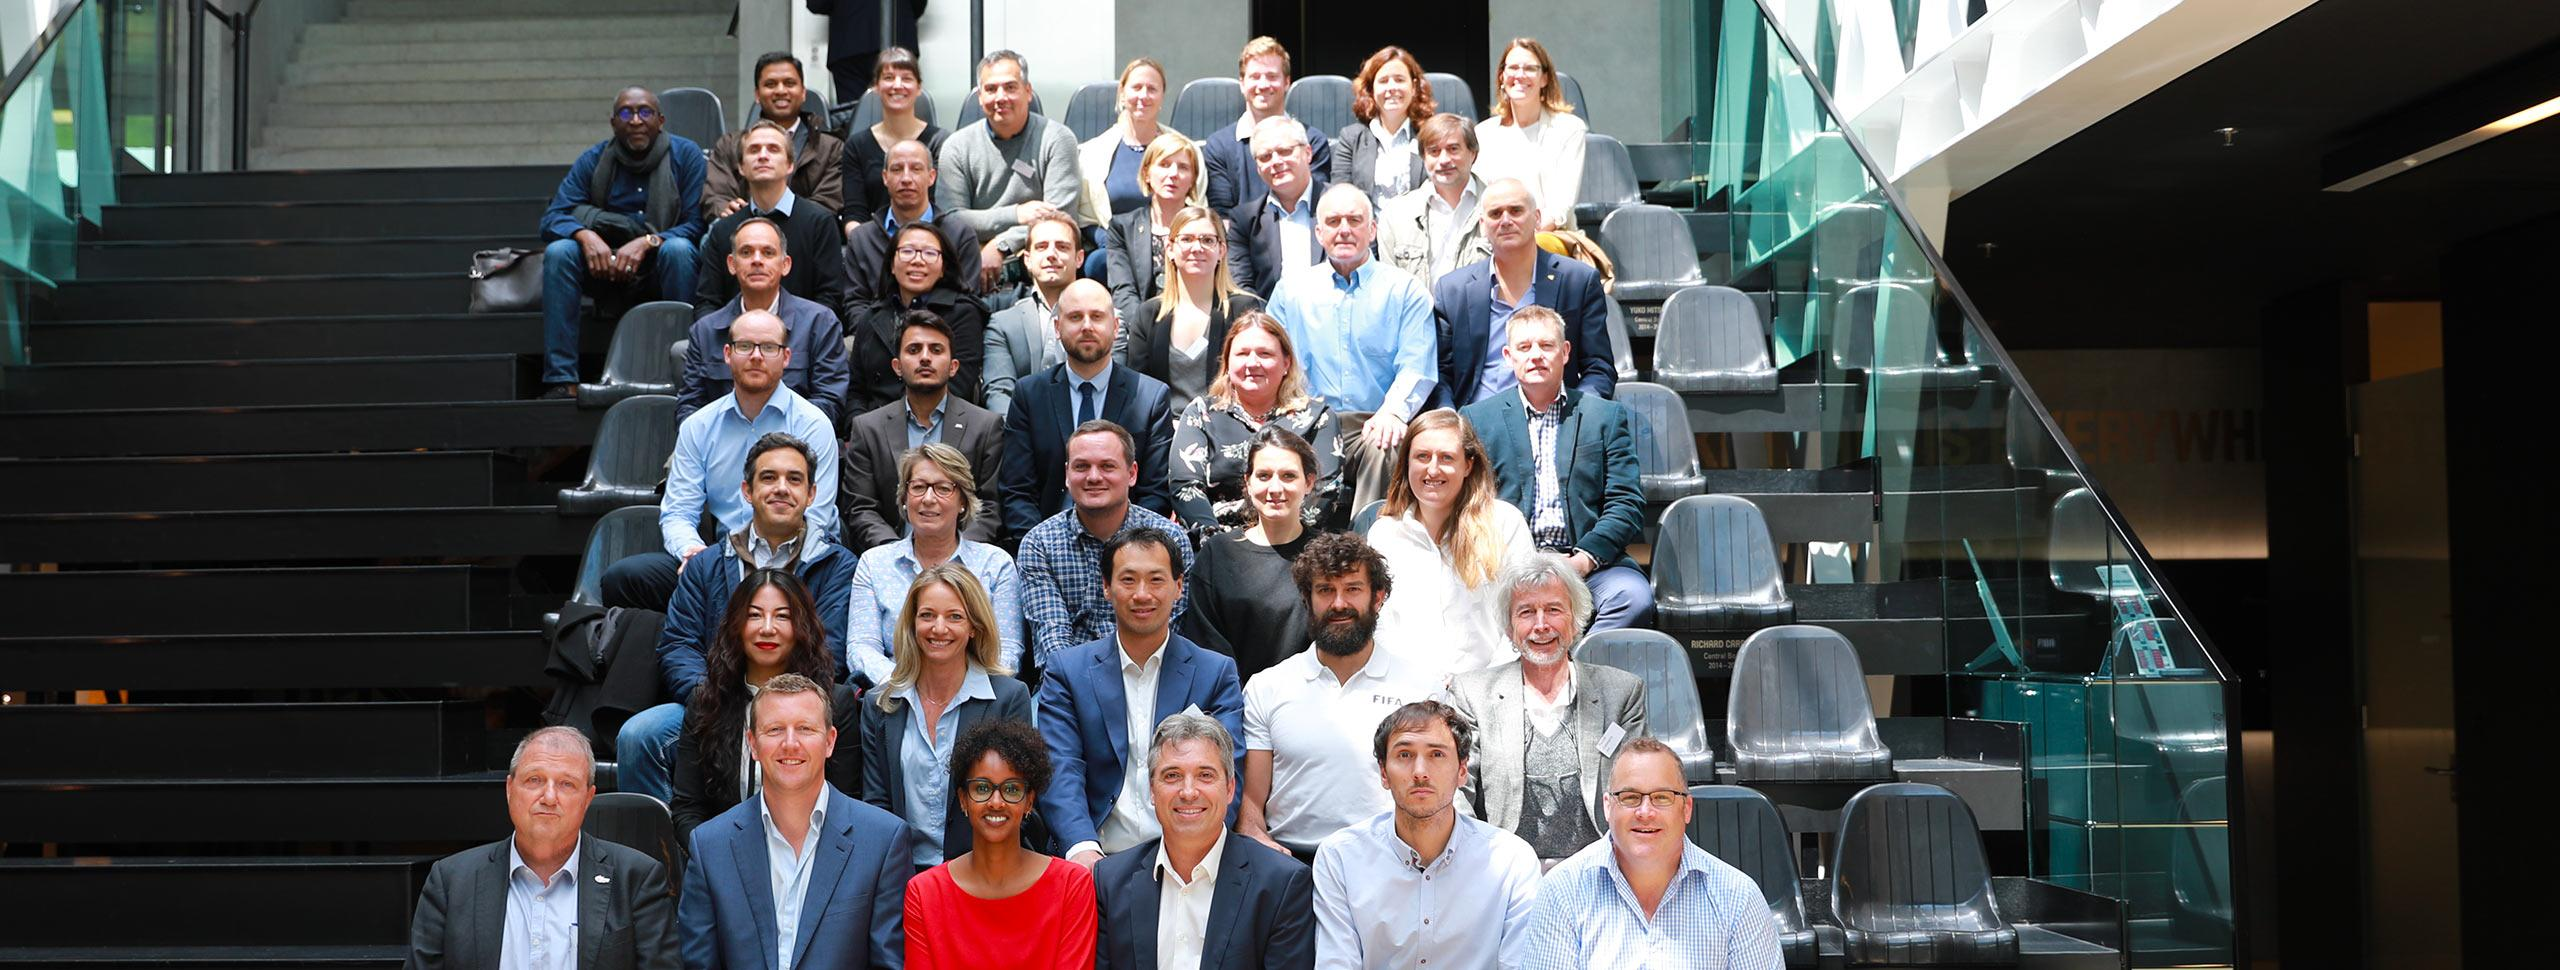 IFSC Attends Sports Development and Education Forum, Switzerland